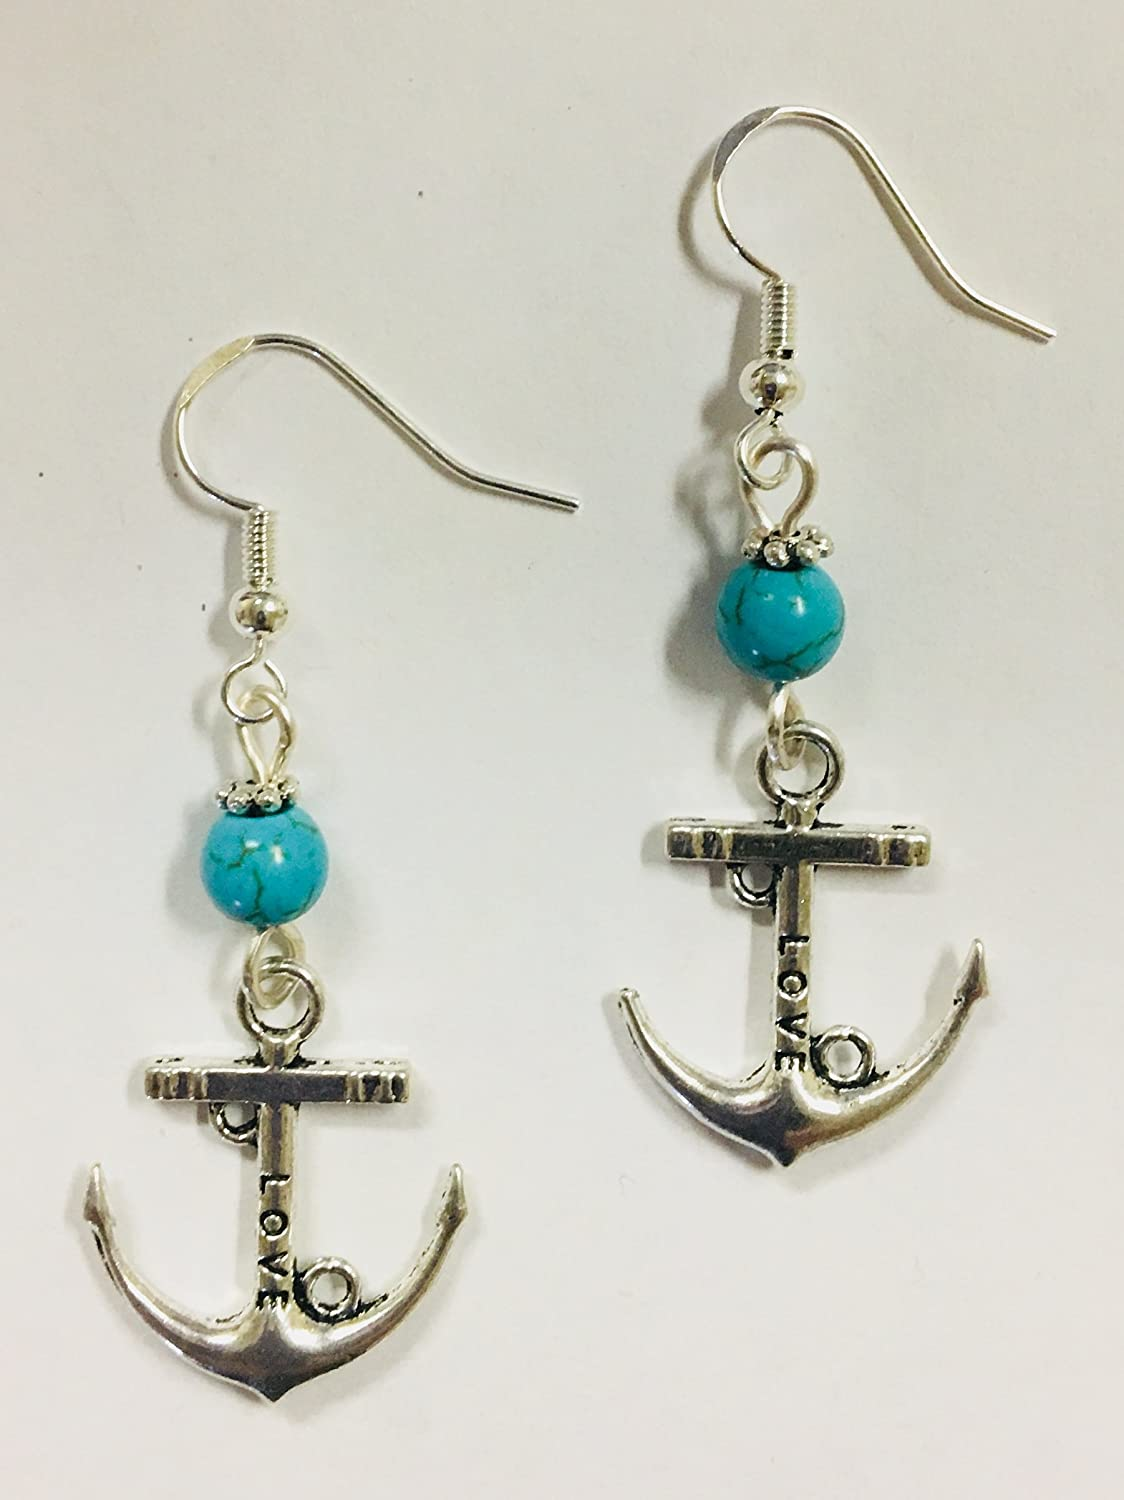 Anchor Earrings with Turquoise Stone Accent Beads on Sterling Silver Earwires